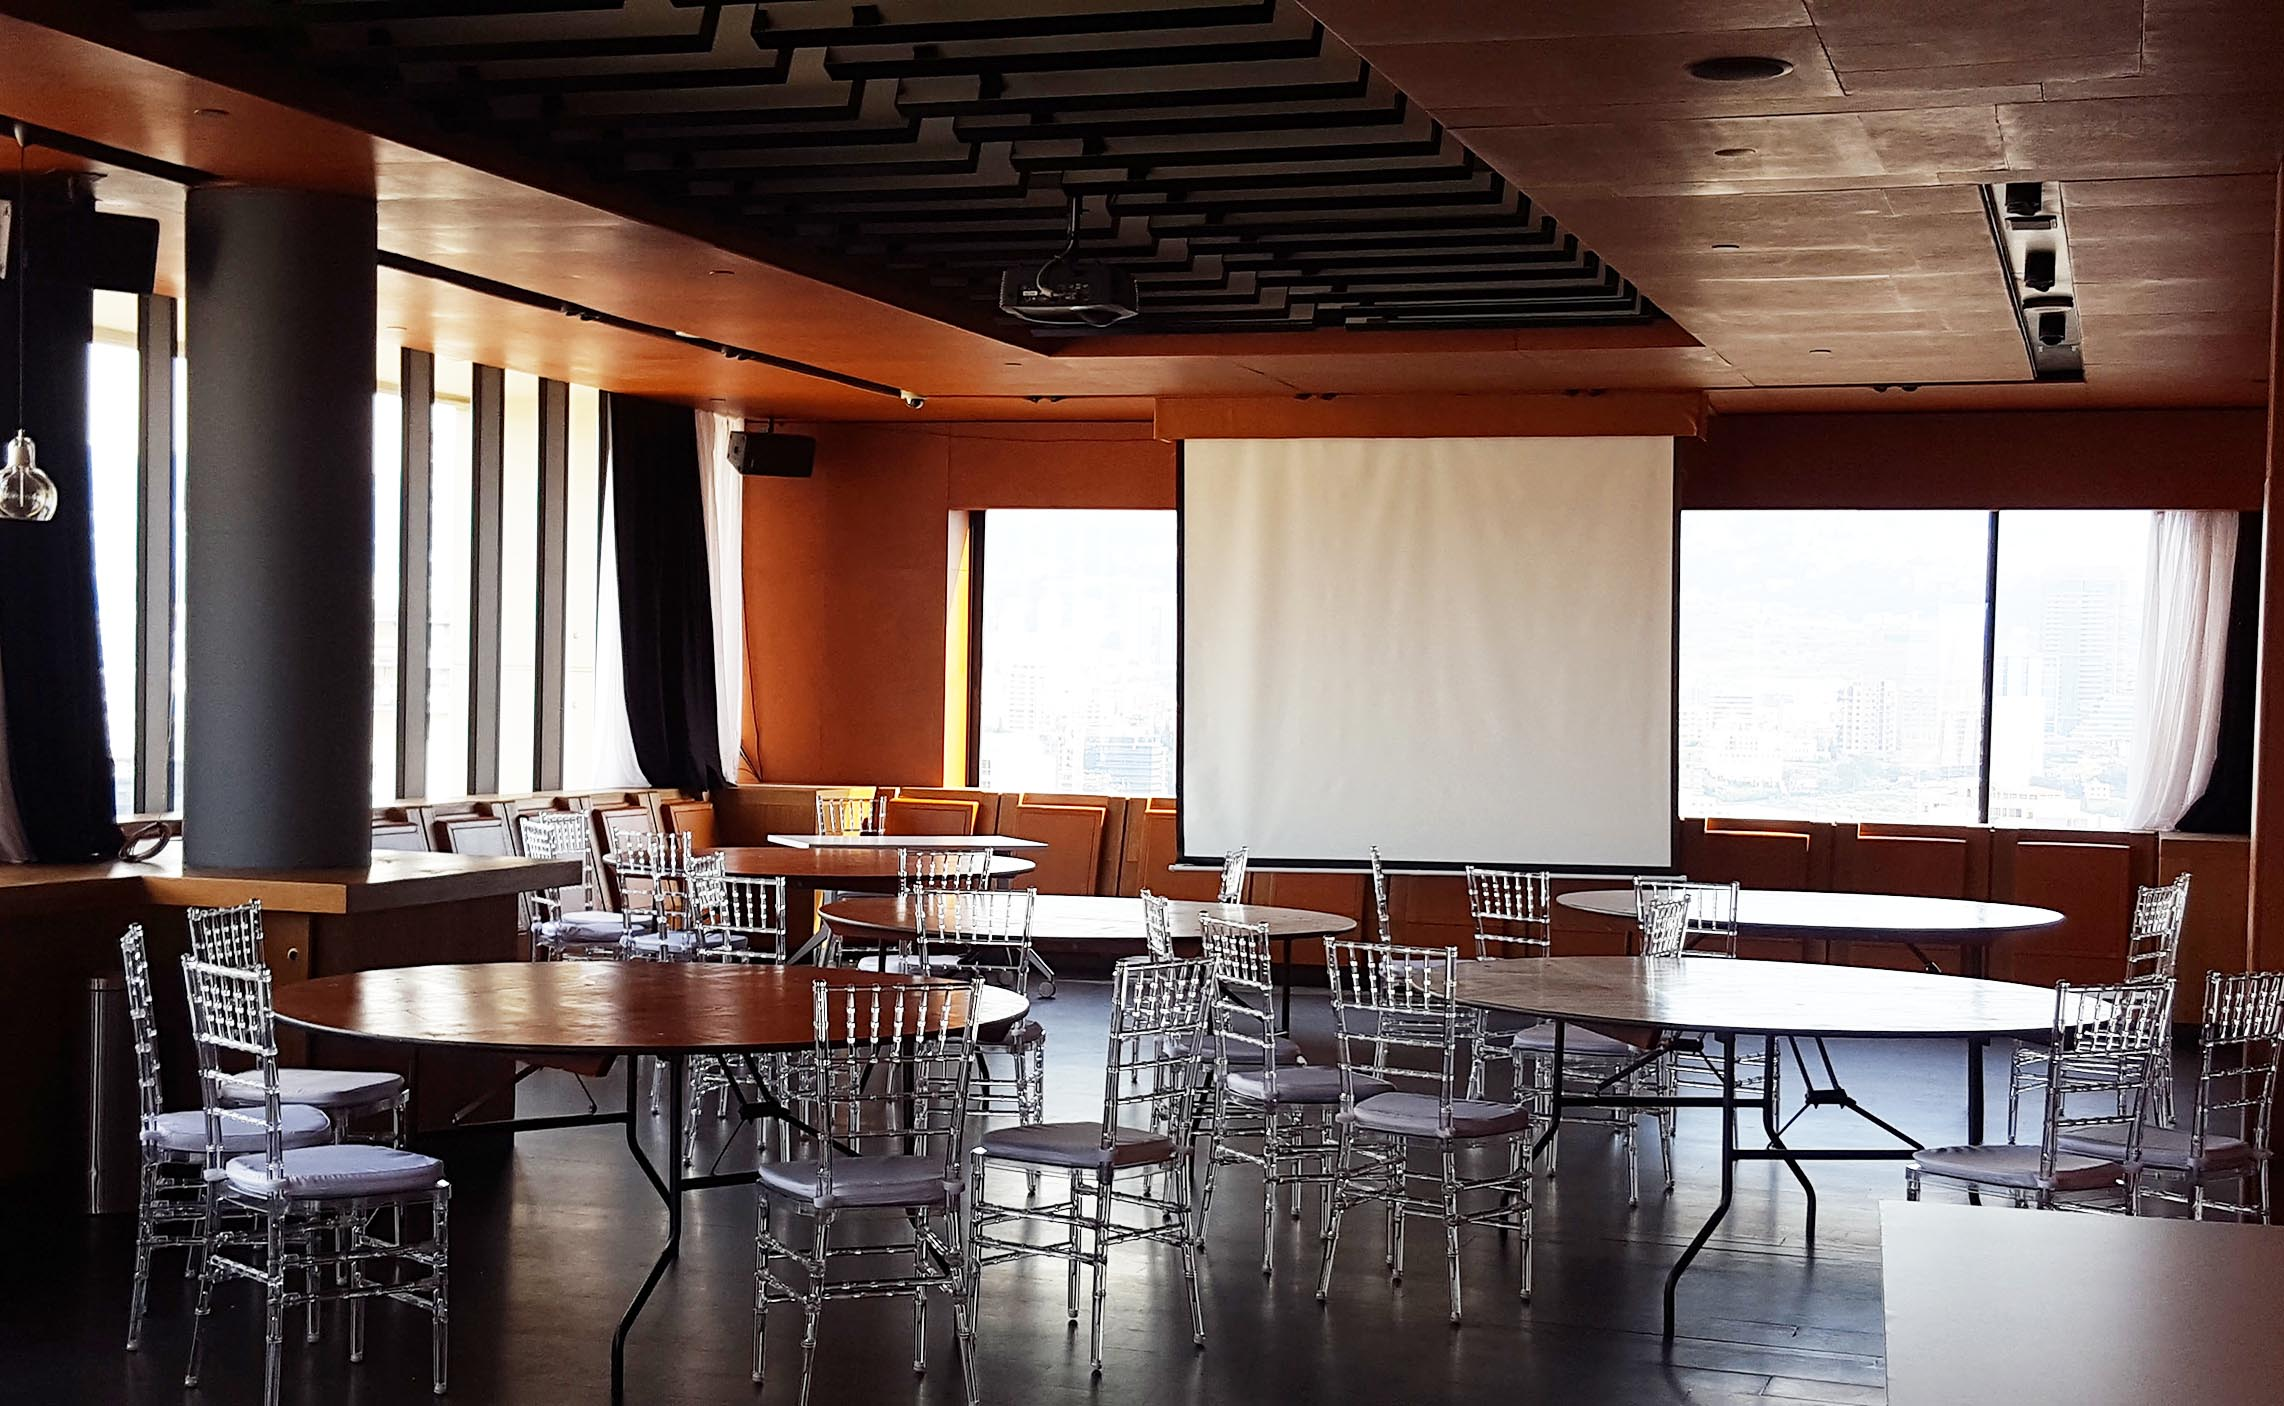 Smallville Hotel meeting and film space 2.jpg